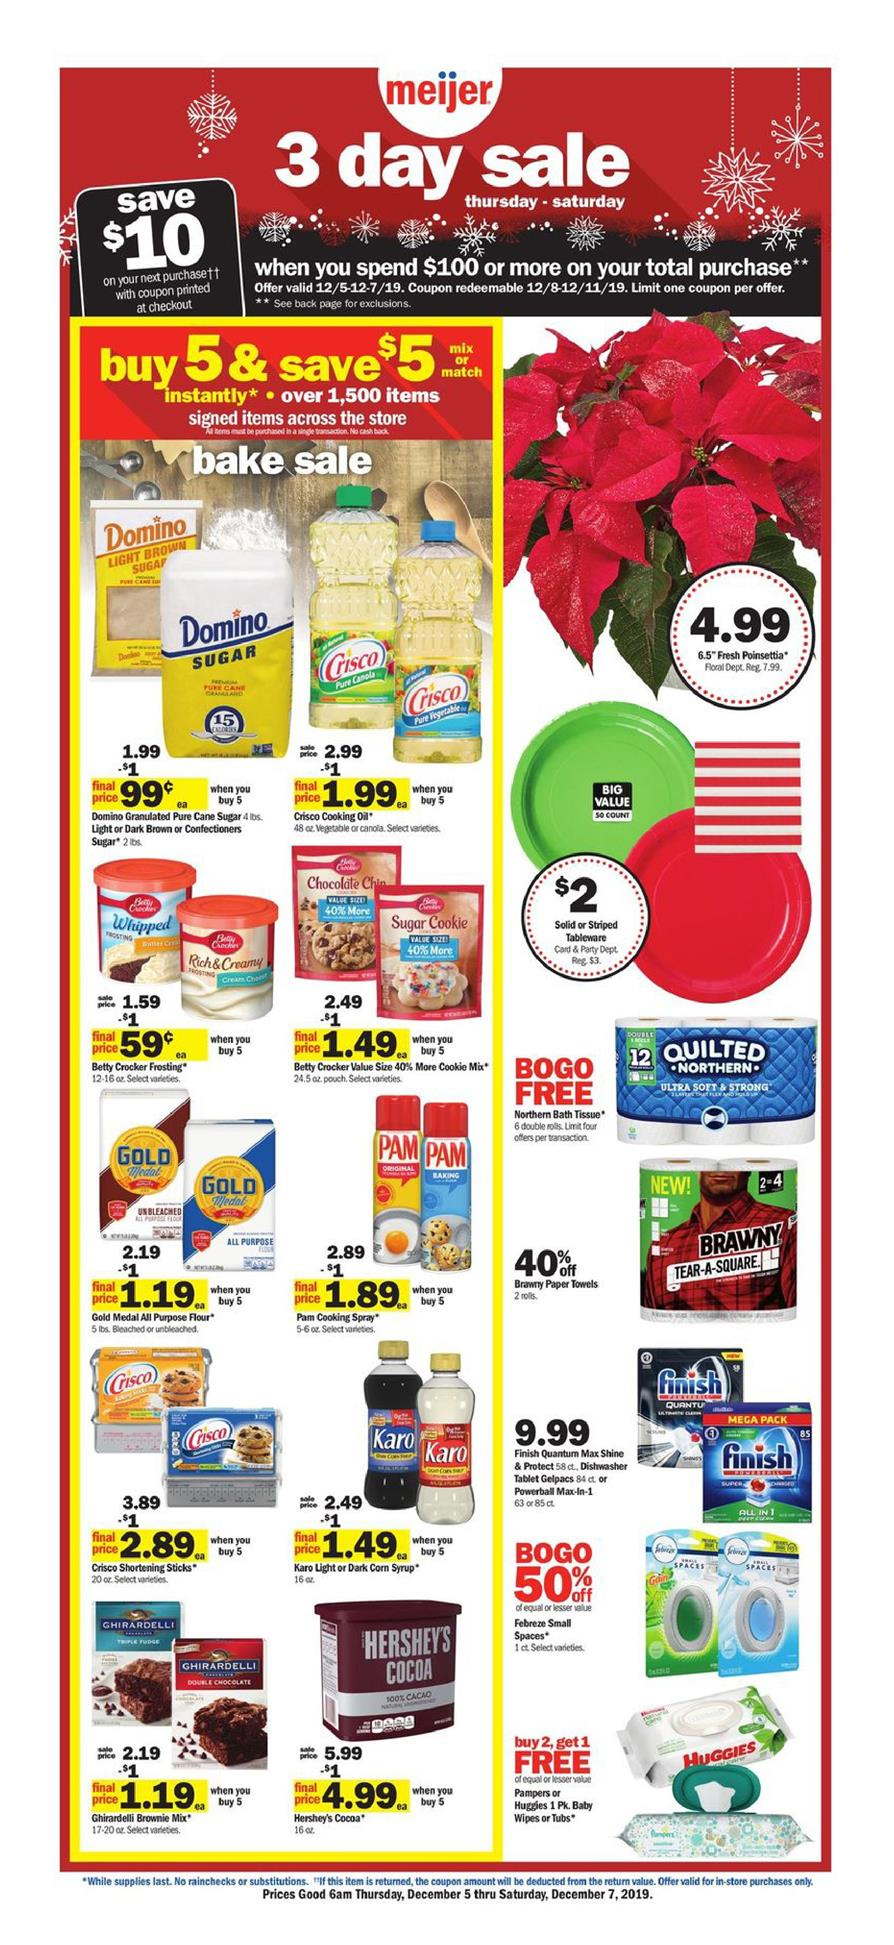 meijer ad 3 day sale dec 5 2019